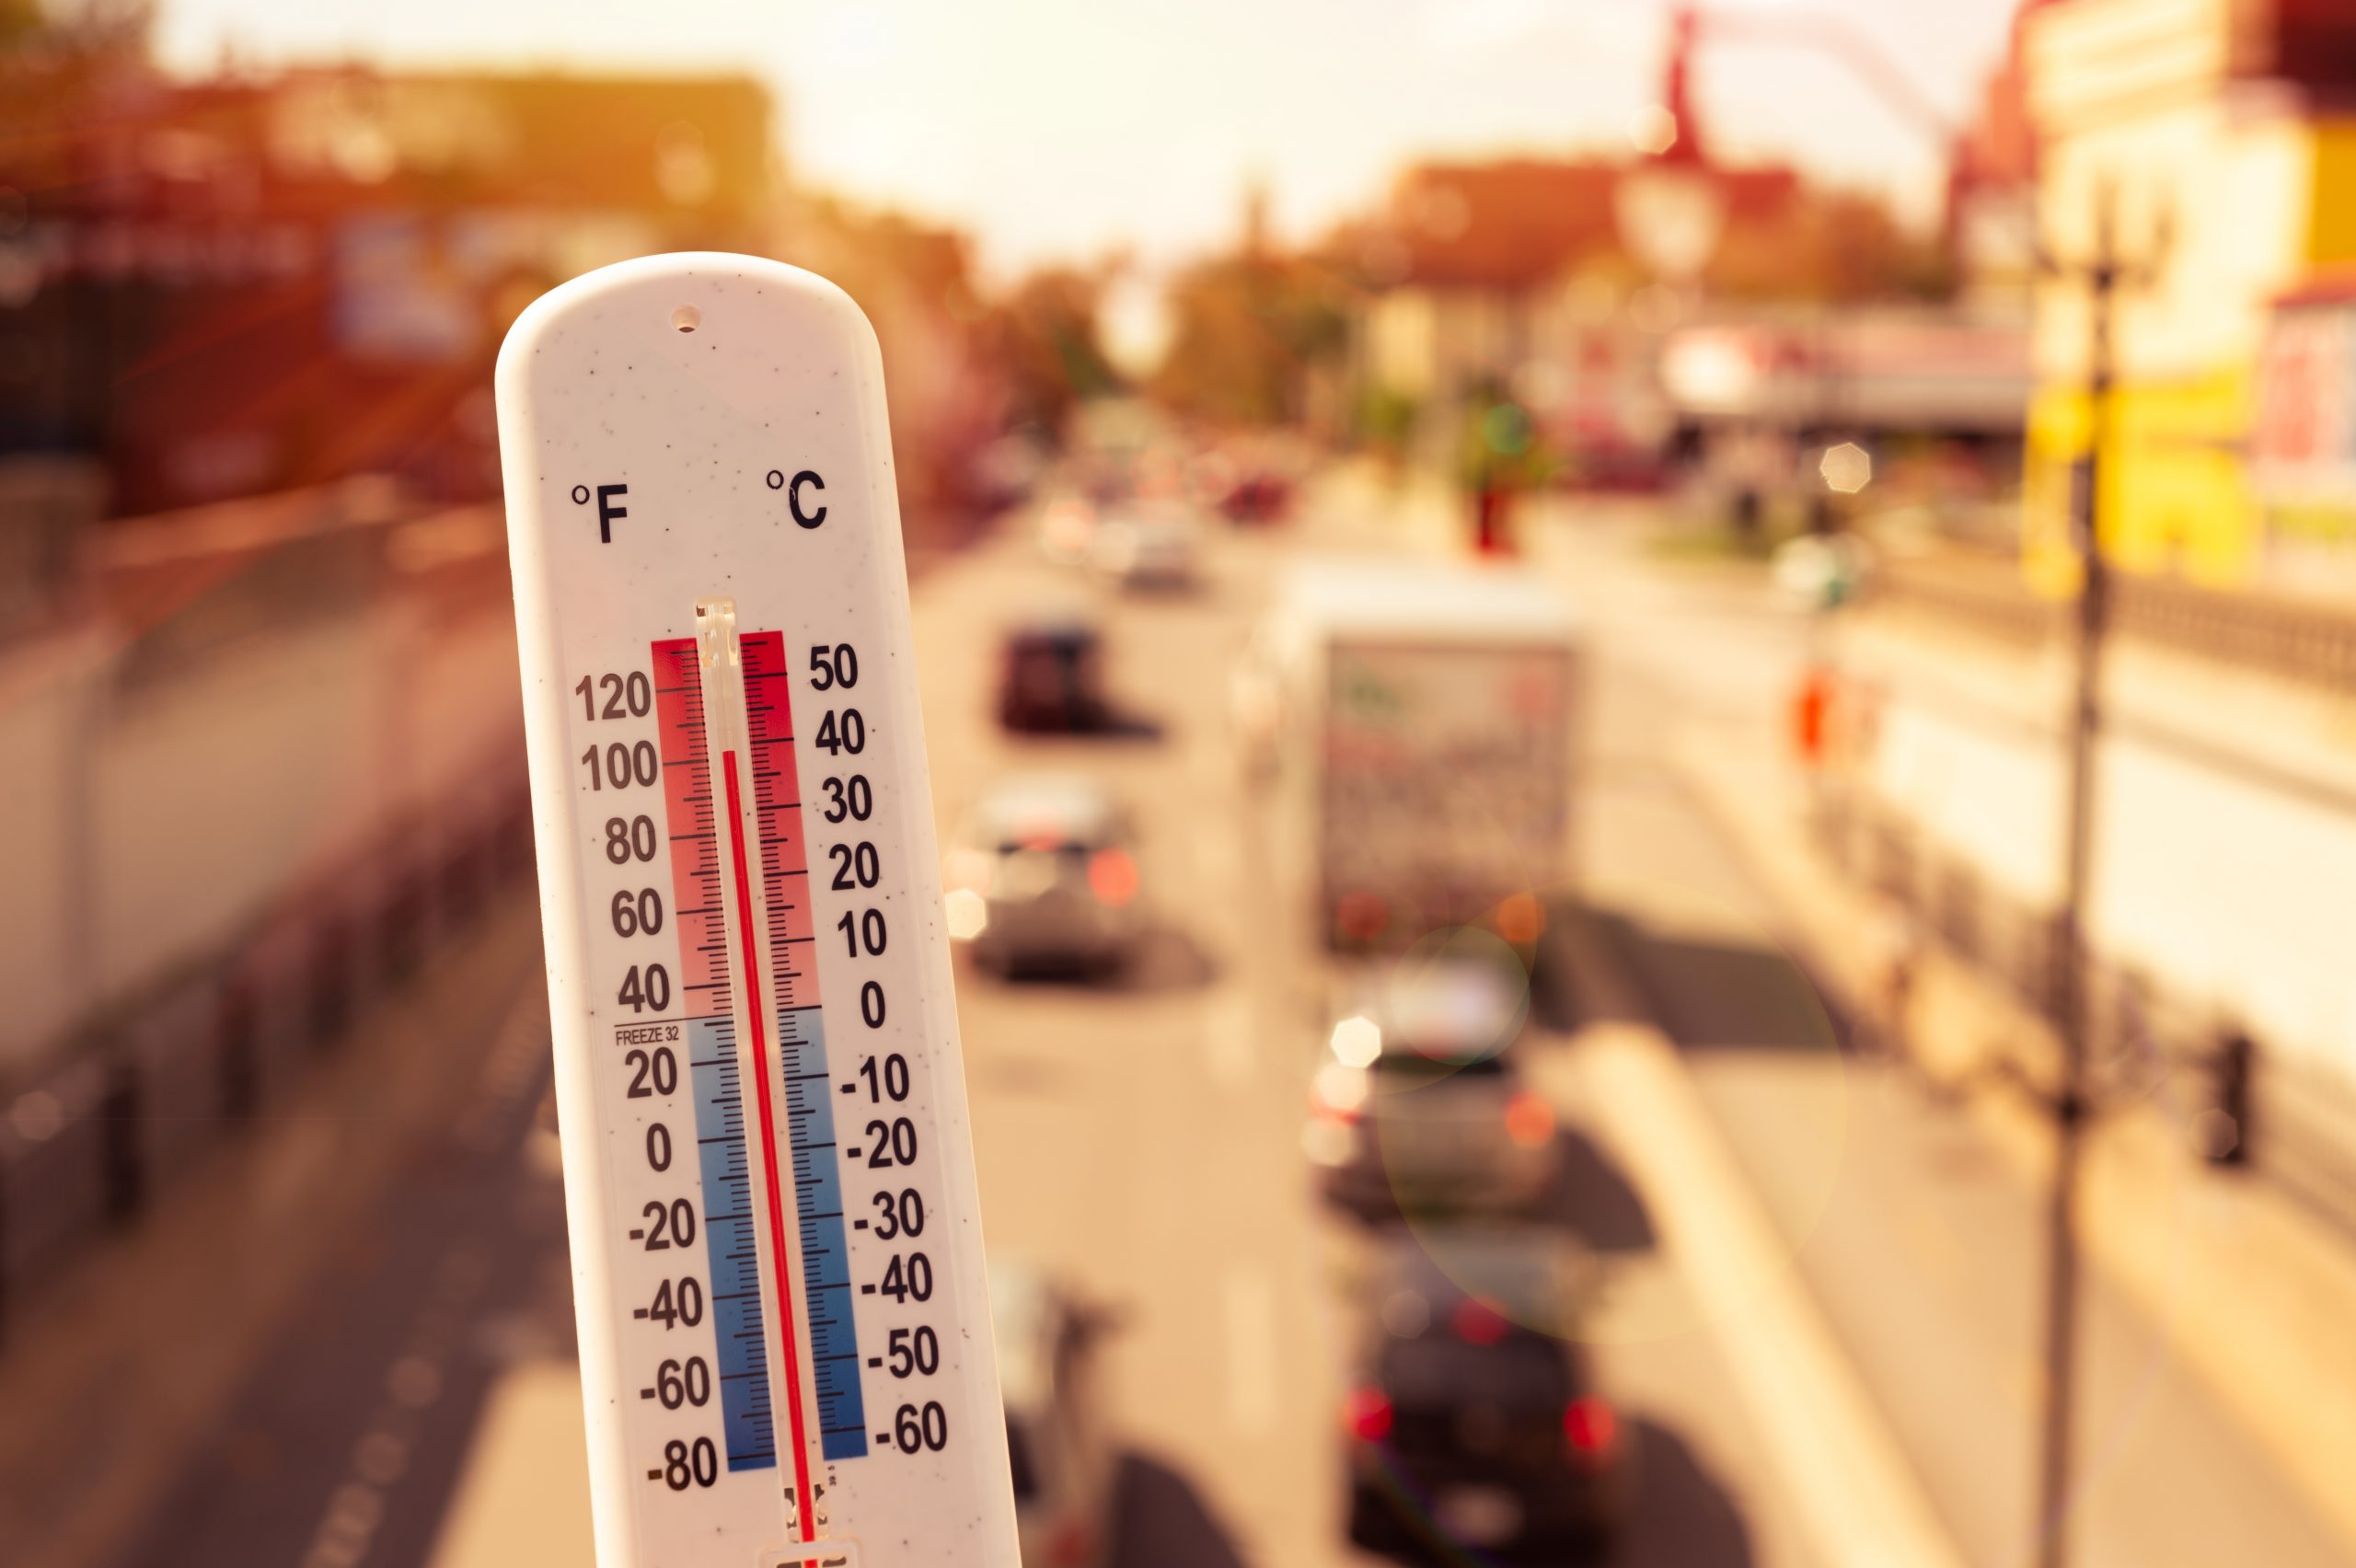 Thermometer in front of cars and traffic during heatwave in the City.